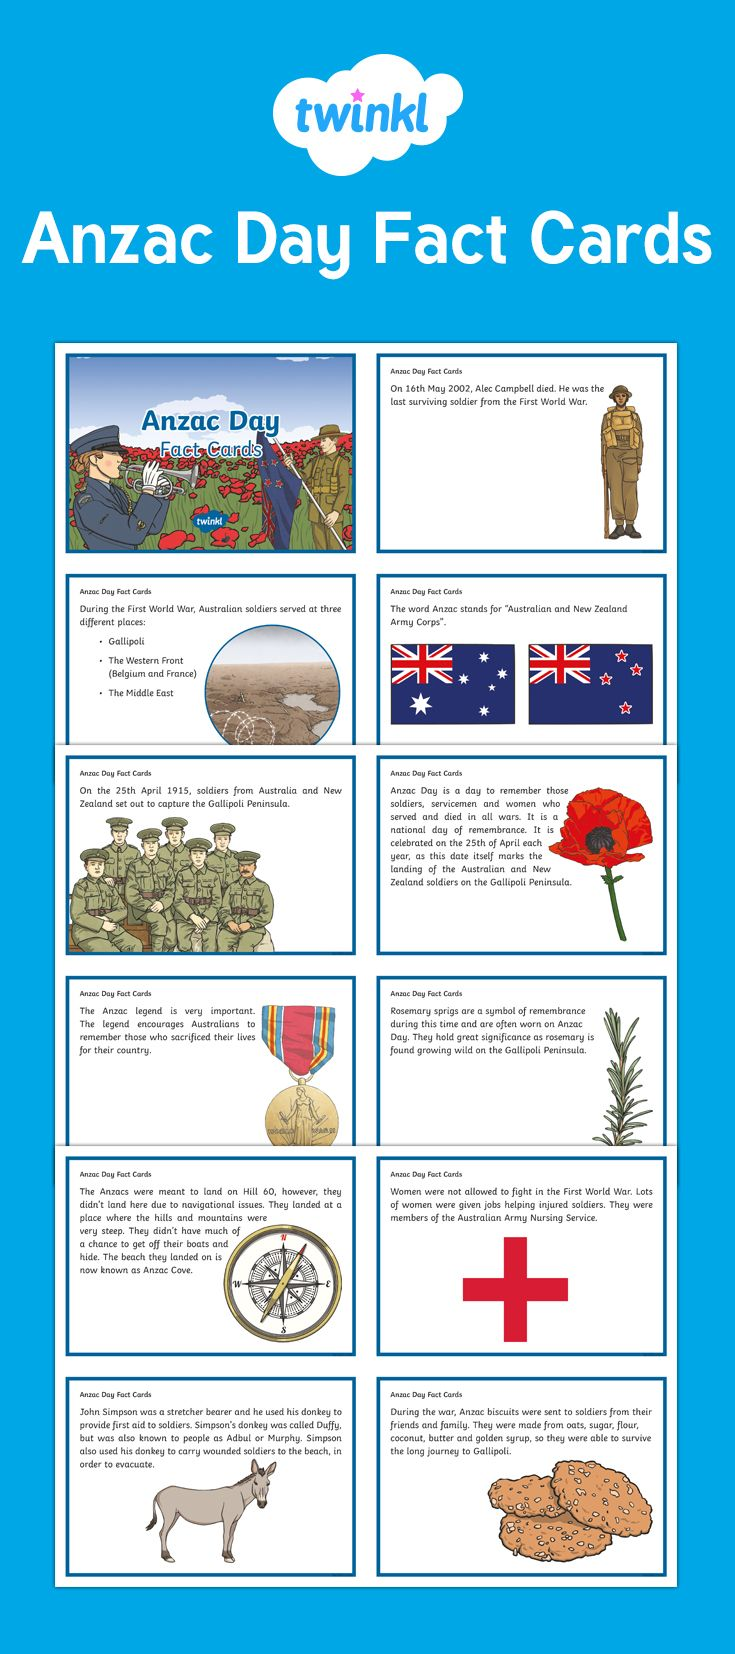 These Anzac Day fact cards are a great way to visualise all the important points in this topic, with clear text and lovely illustrations. This resource features 14 fact and history cards about Anzac Day and how it came to be. Great to use as part of your display, as writing aids or even as discussion prompts.